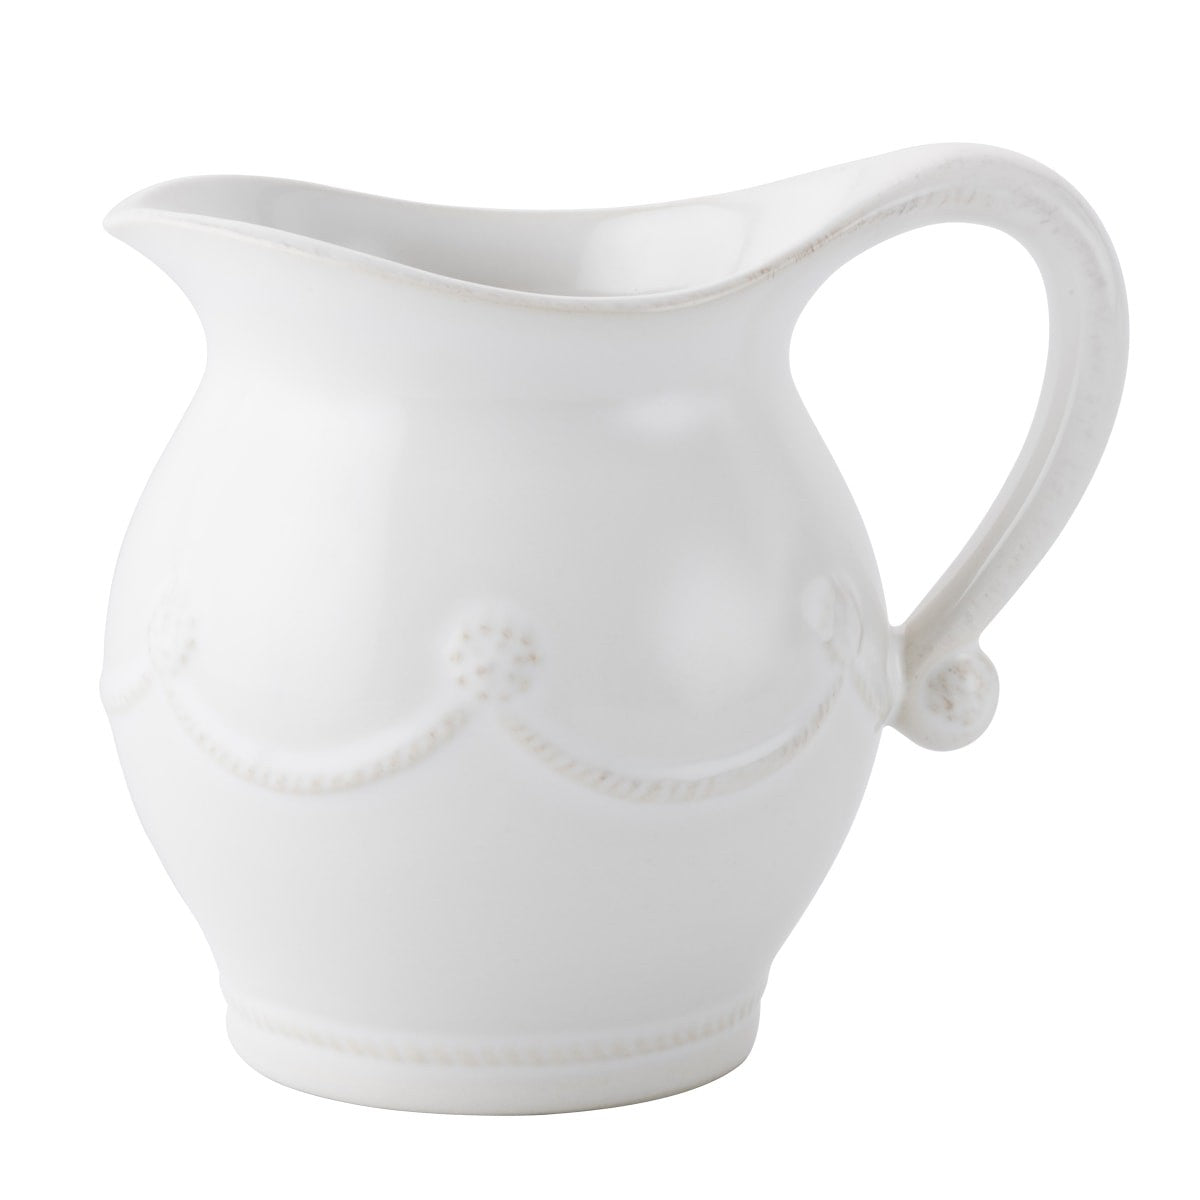 Juliska - Berry & Thread Whitewash Creamer